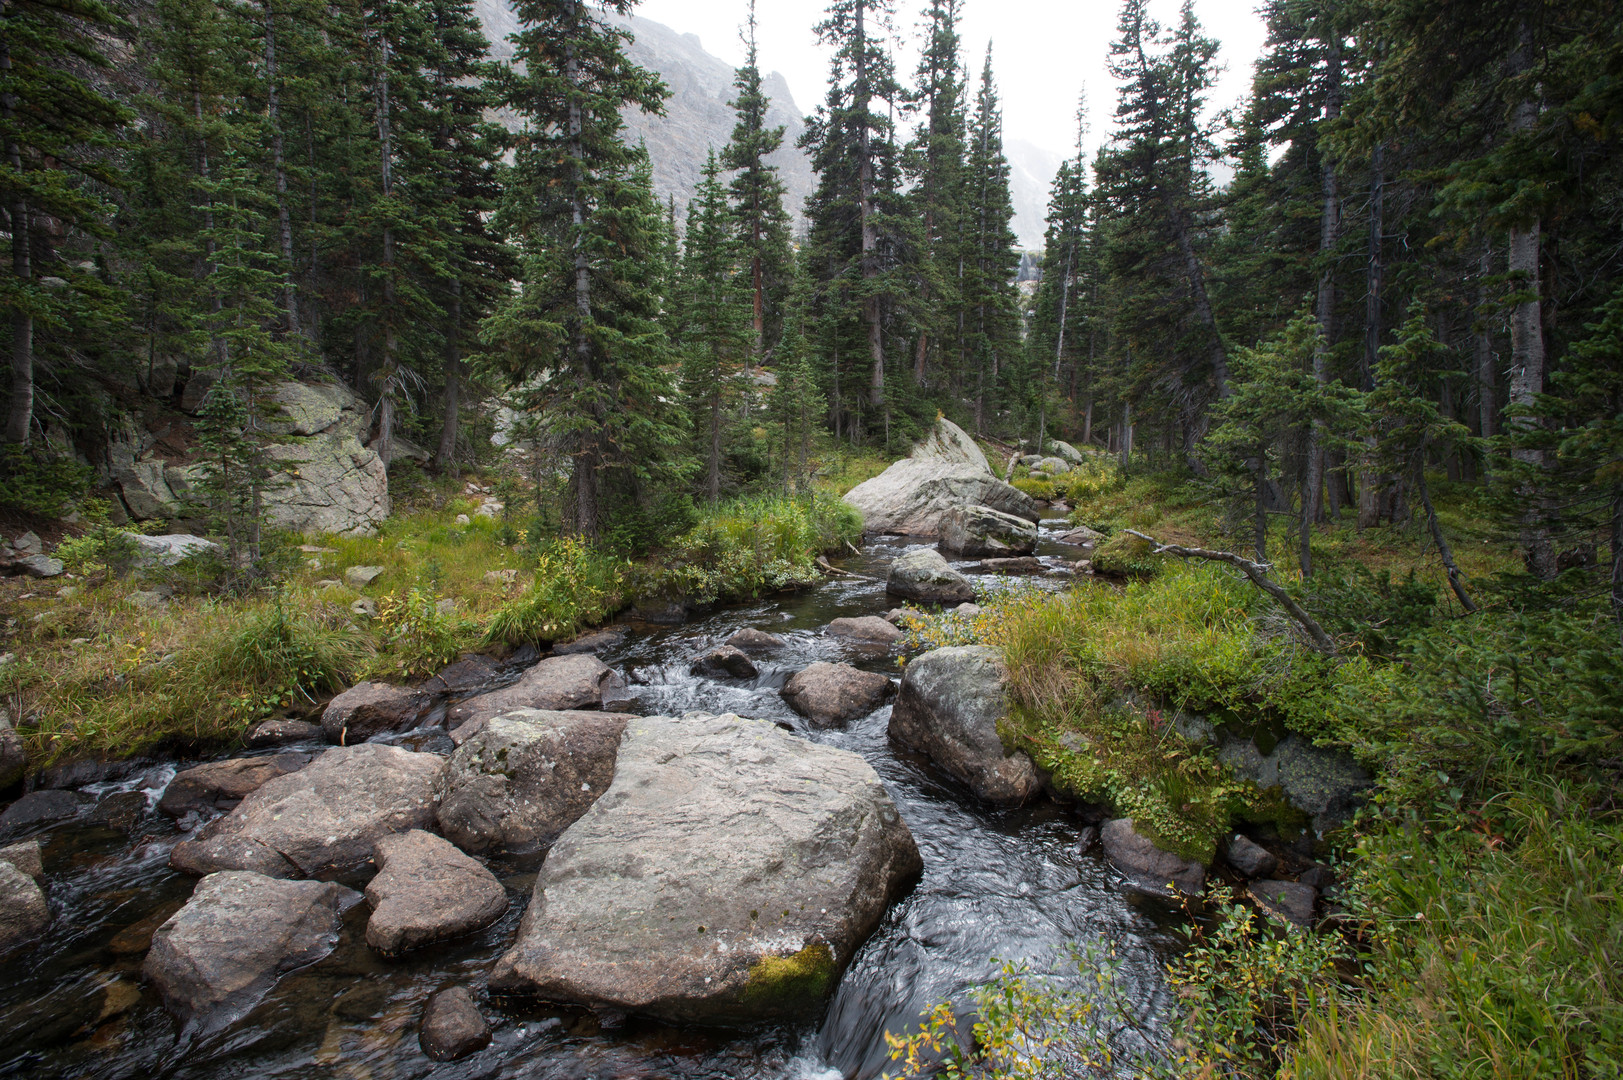 Icy Brook flows near The Loch in Rocky Mountain National Park Wednesday, September 16, 2015. The stream can be viewed in route to Sky Pond.